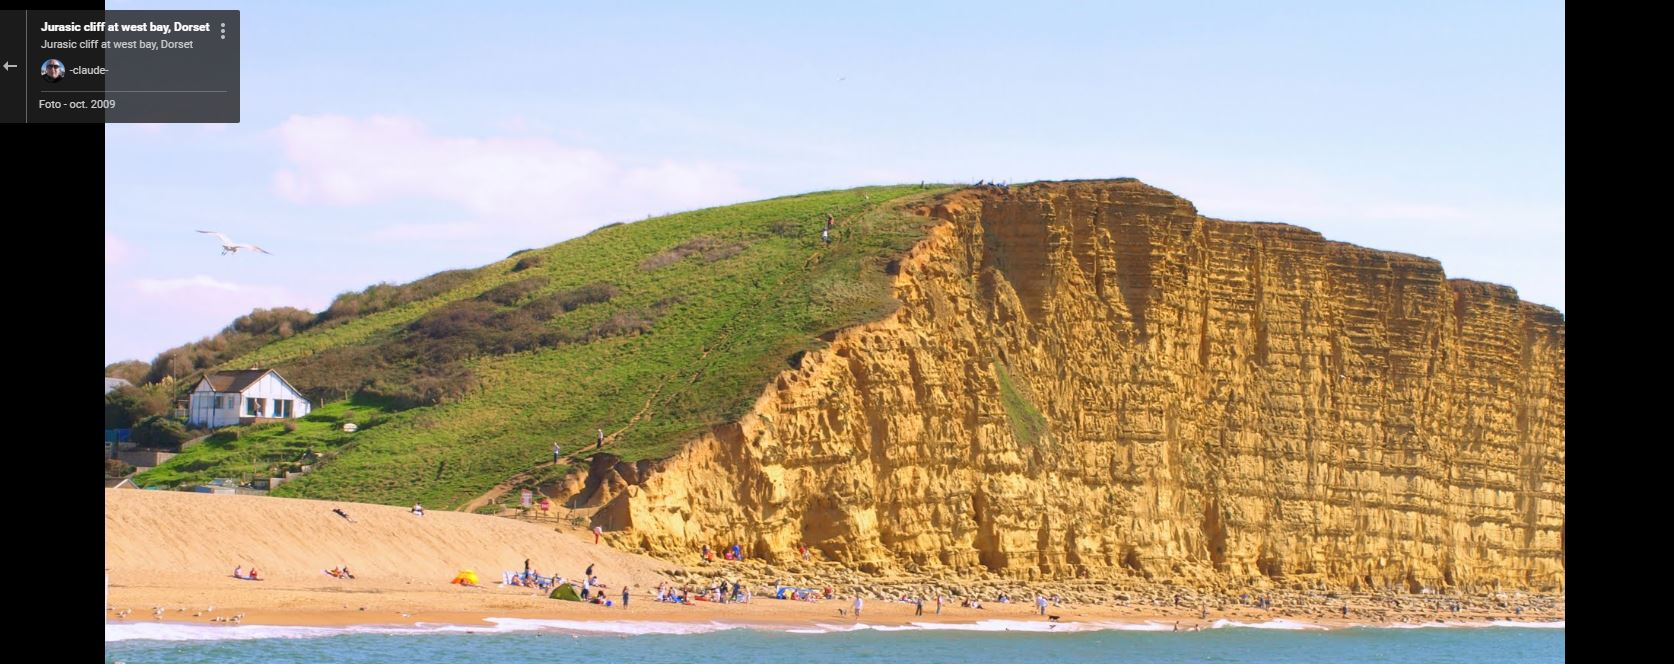 pueblo de broadchurch